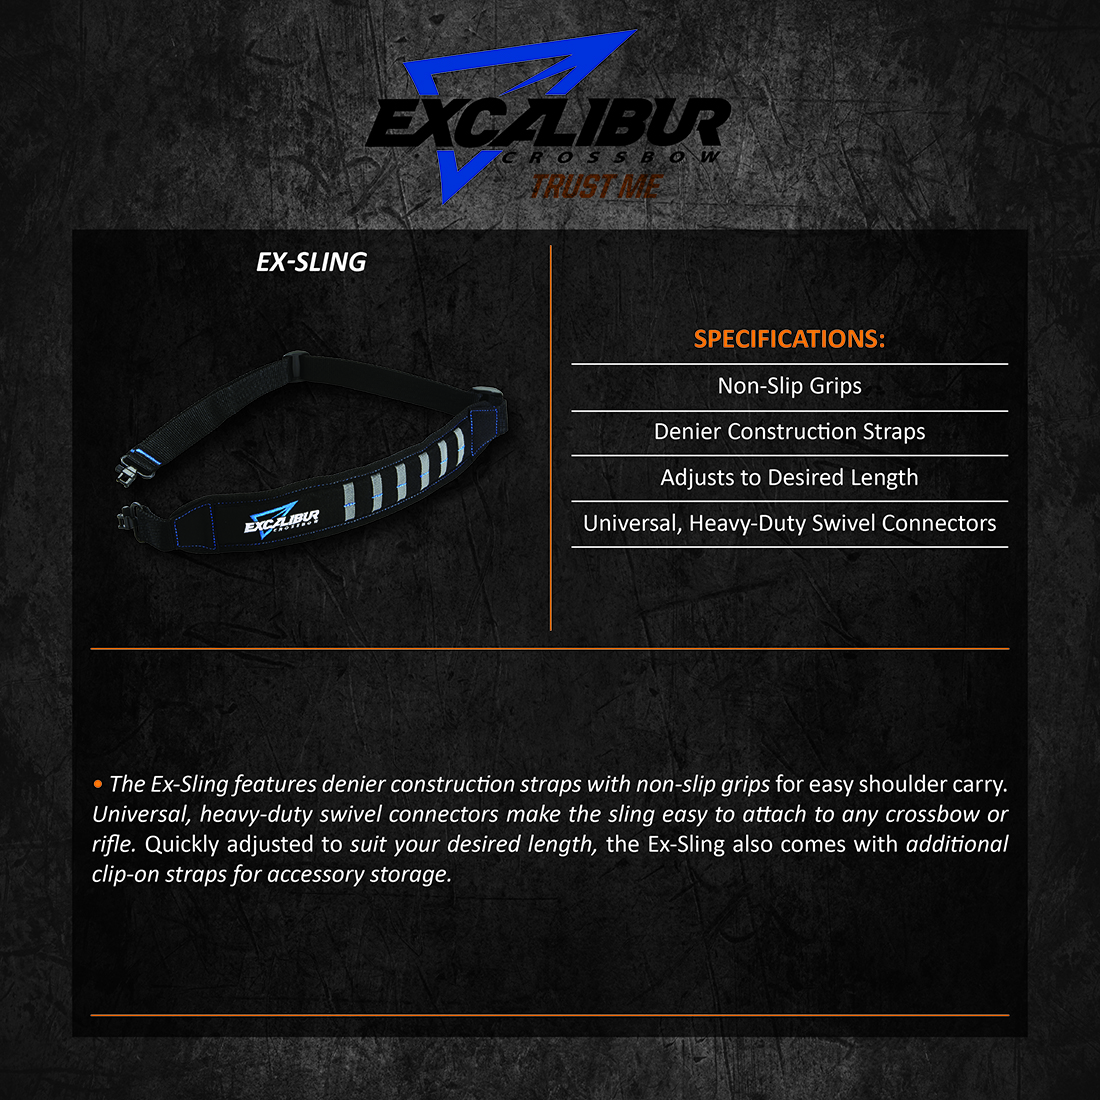 Excalibur_ExSling_Product_Description